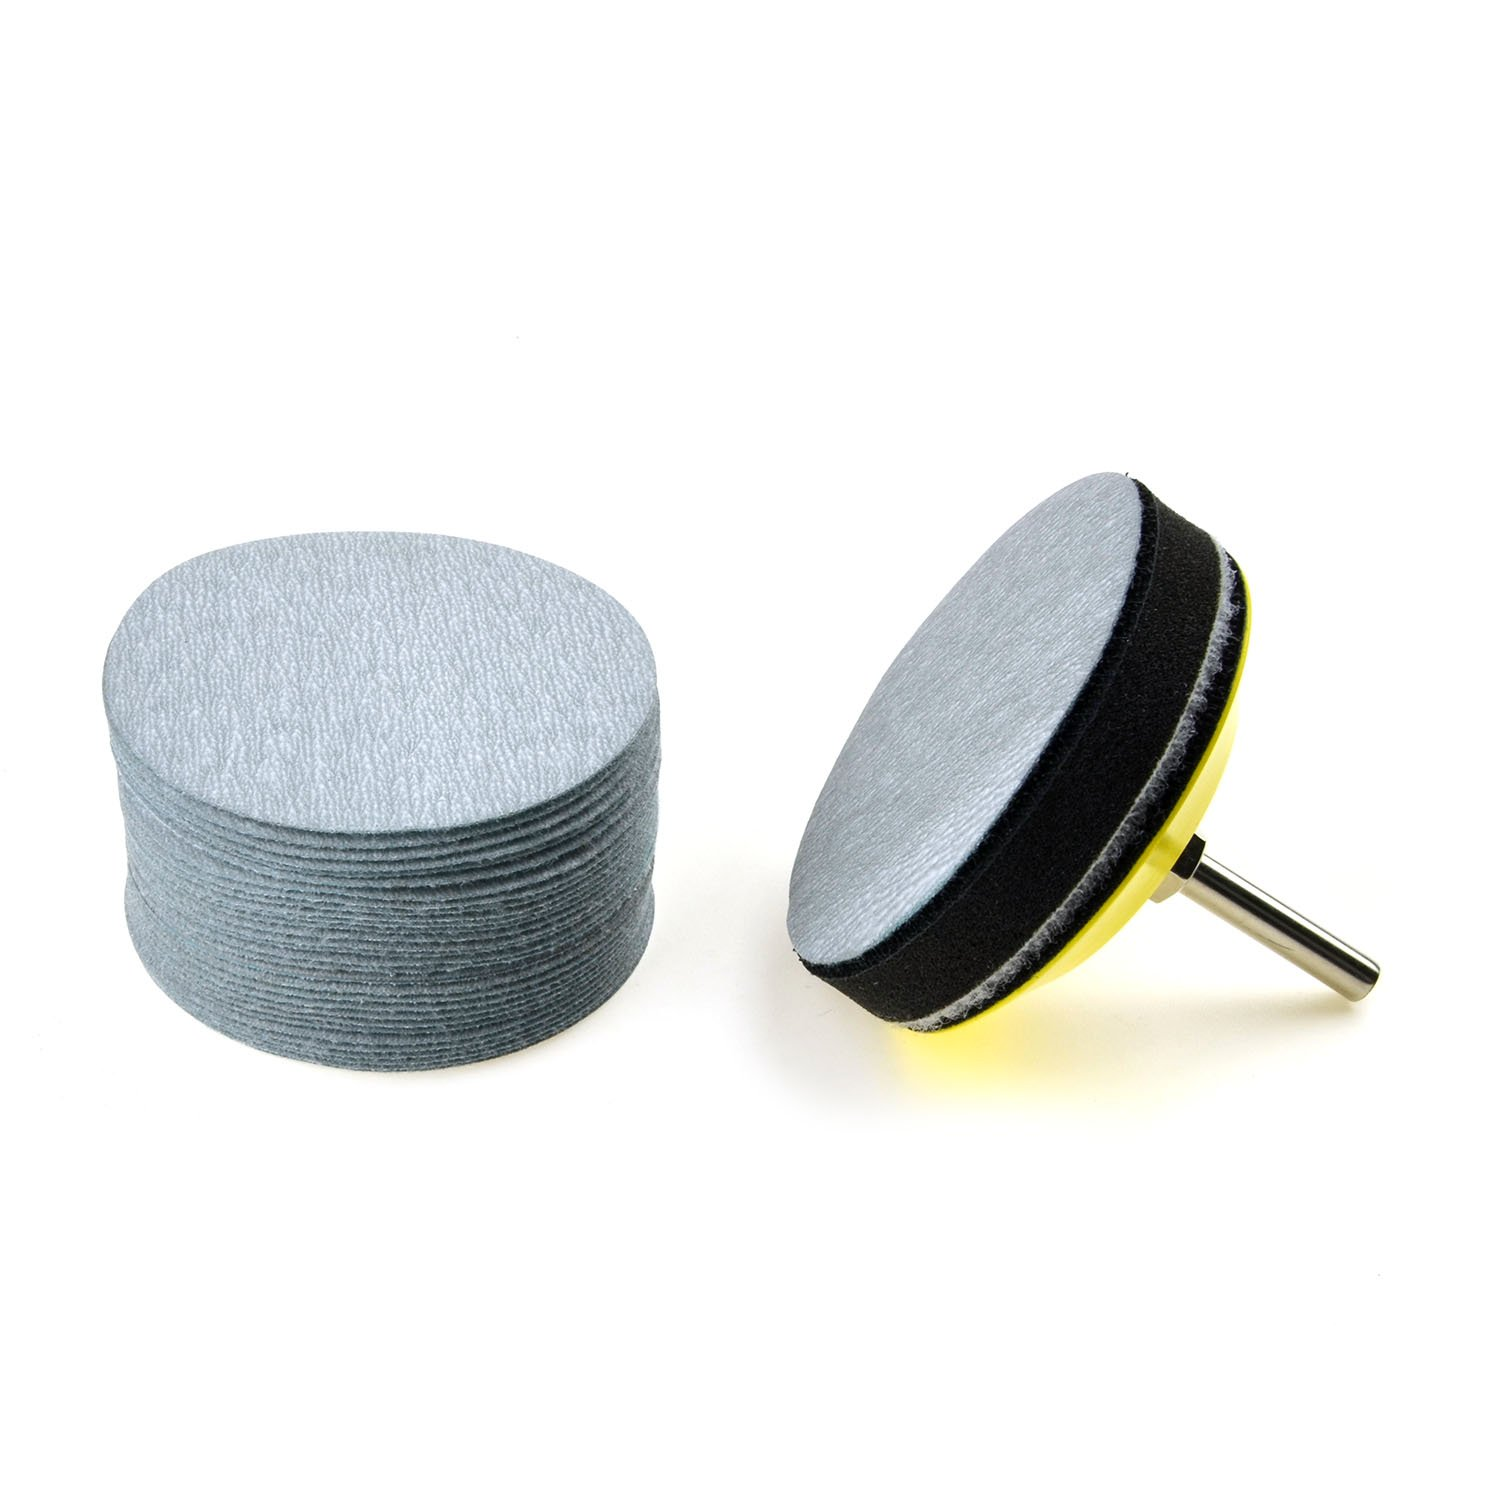 30-Pack Soft Foam Buffering Pad for DIY Woodworking 3 inches 5000 Grit Aluminum Oxide Extra Fine Wet//Dry Hook and Loop Sanding Discs with a 1//4 inch Shank Backing Pad